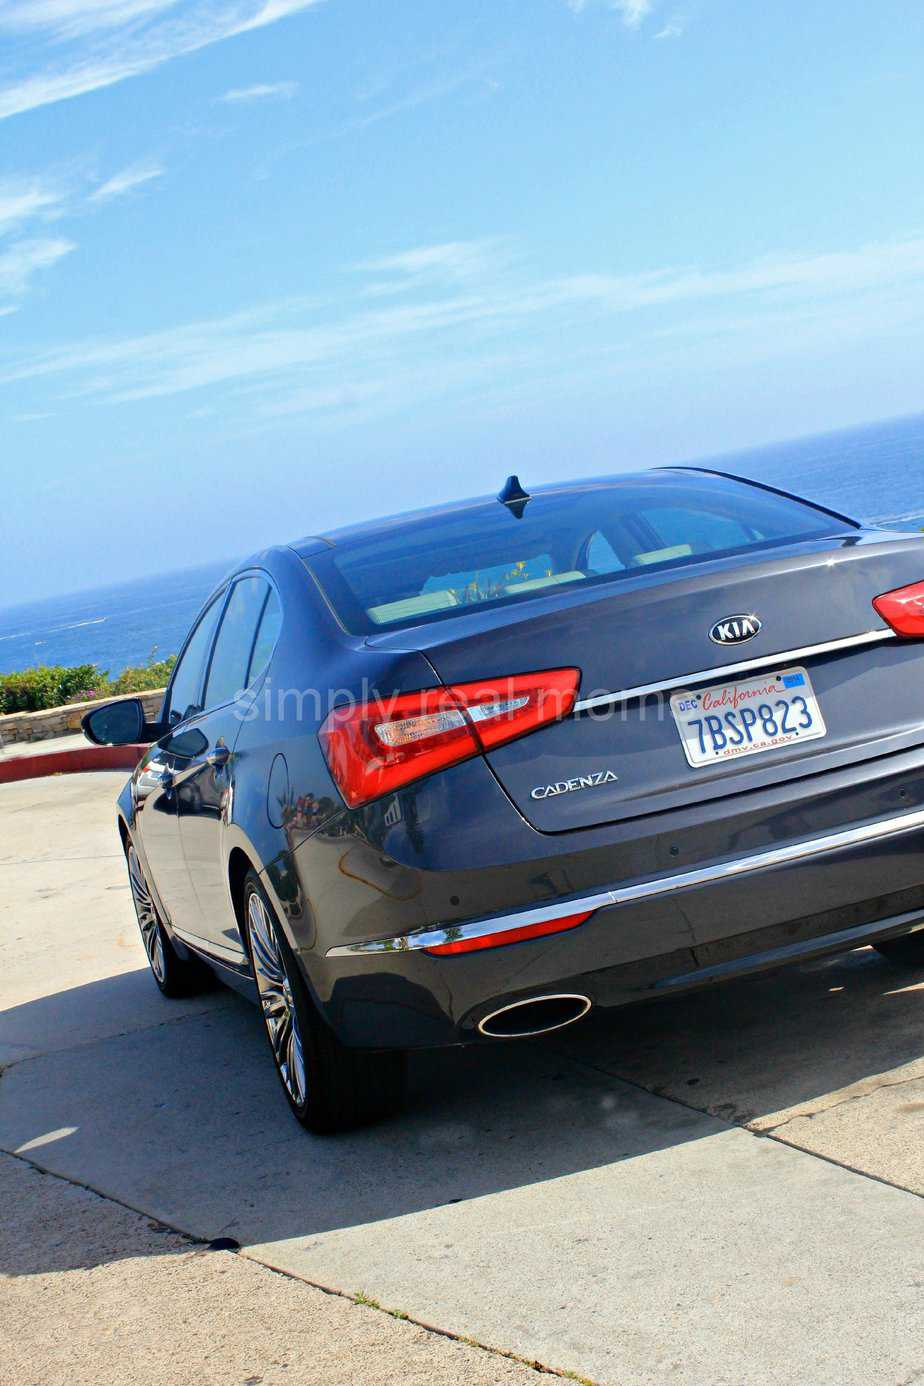 2014 Kia Cadenza Limited: Touring Orange County in Style 3